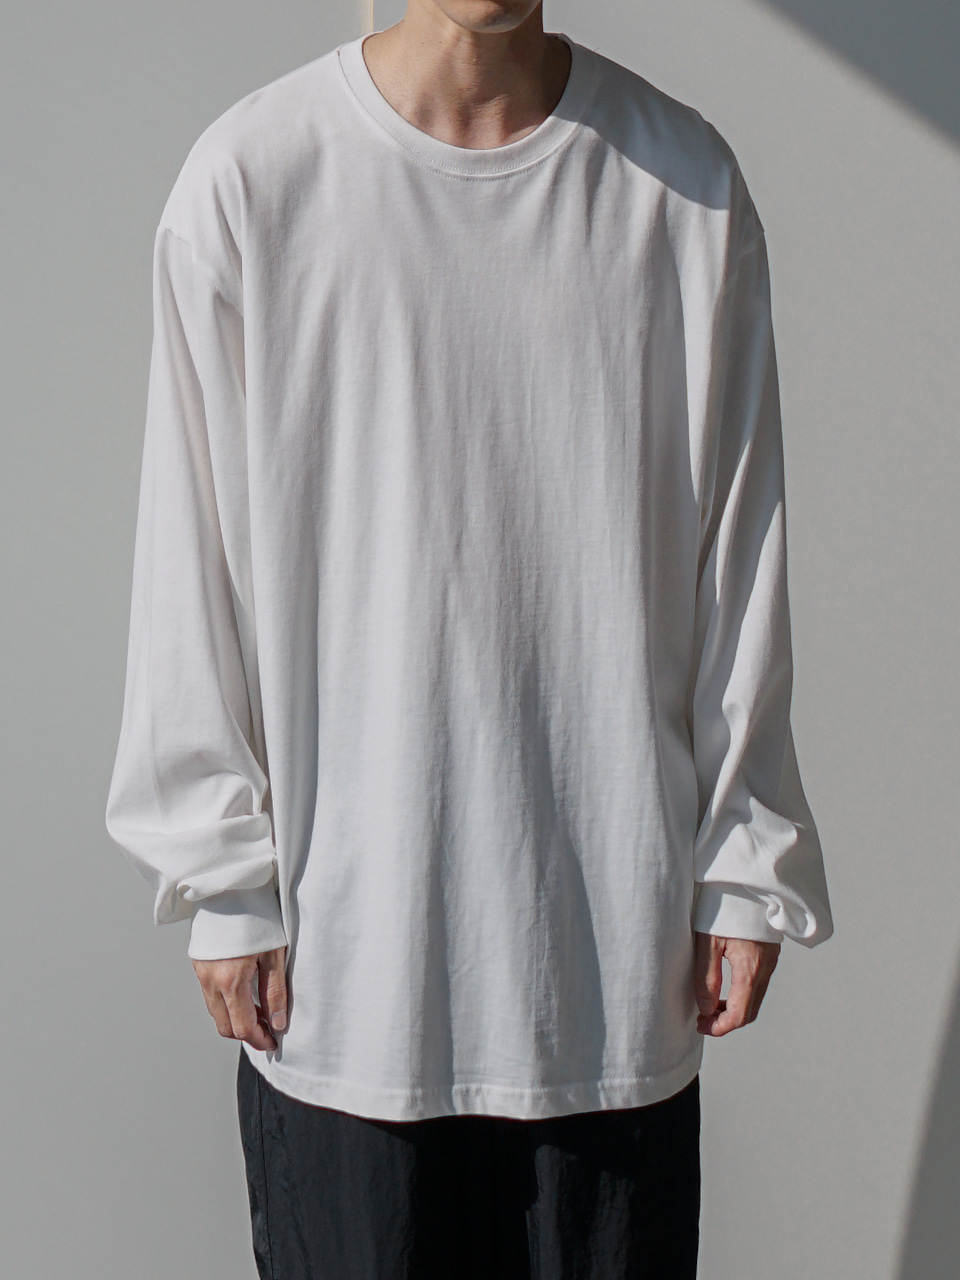 More Relaxed Long Sleeve Tee (6color)